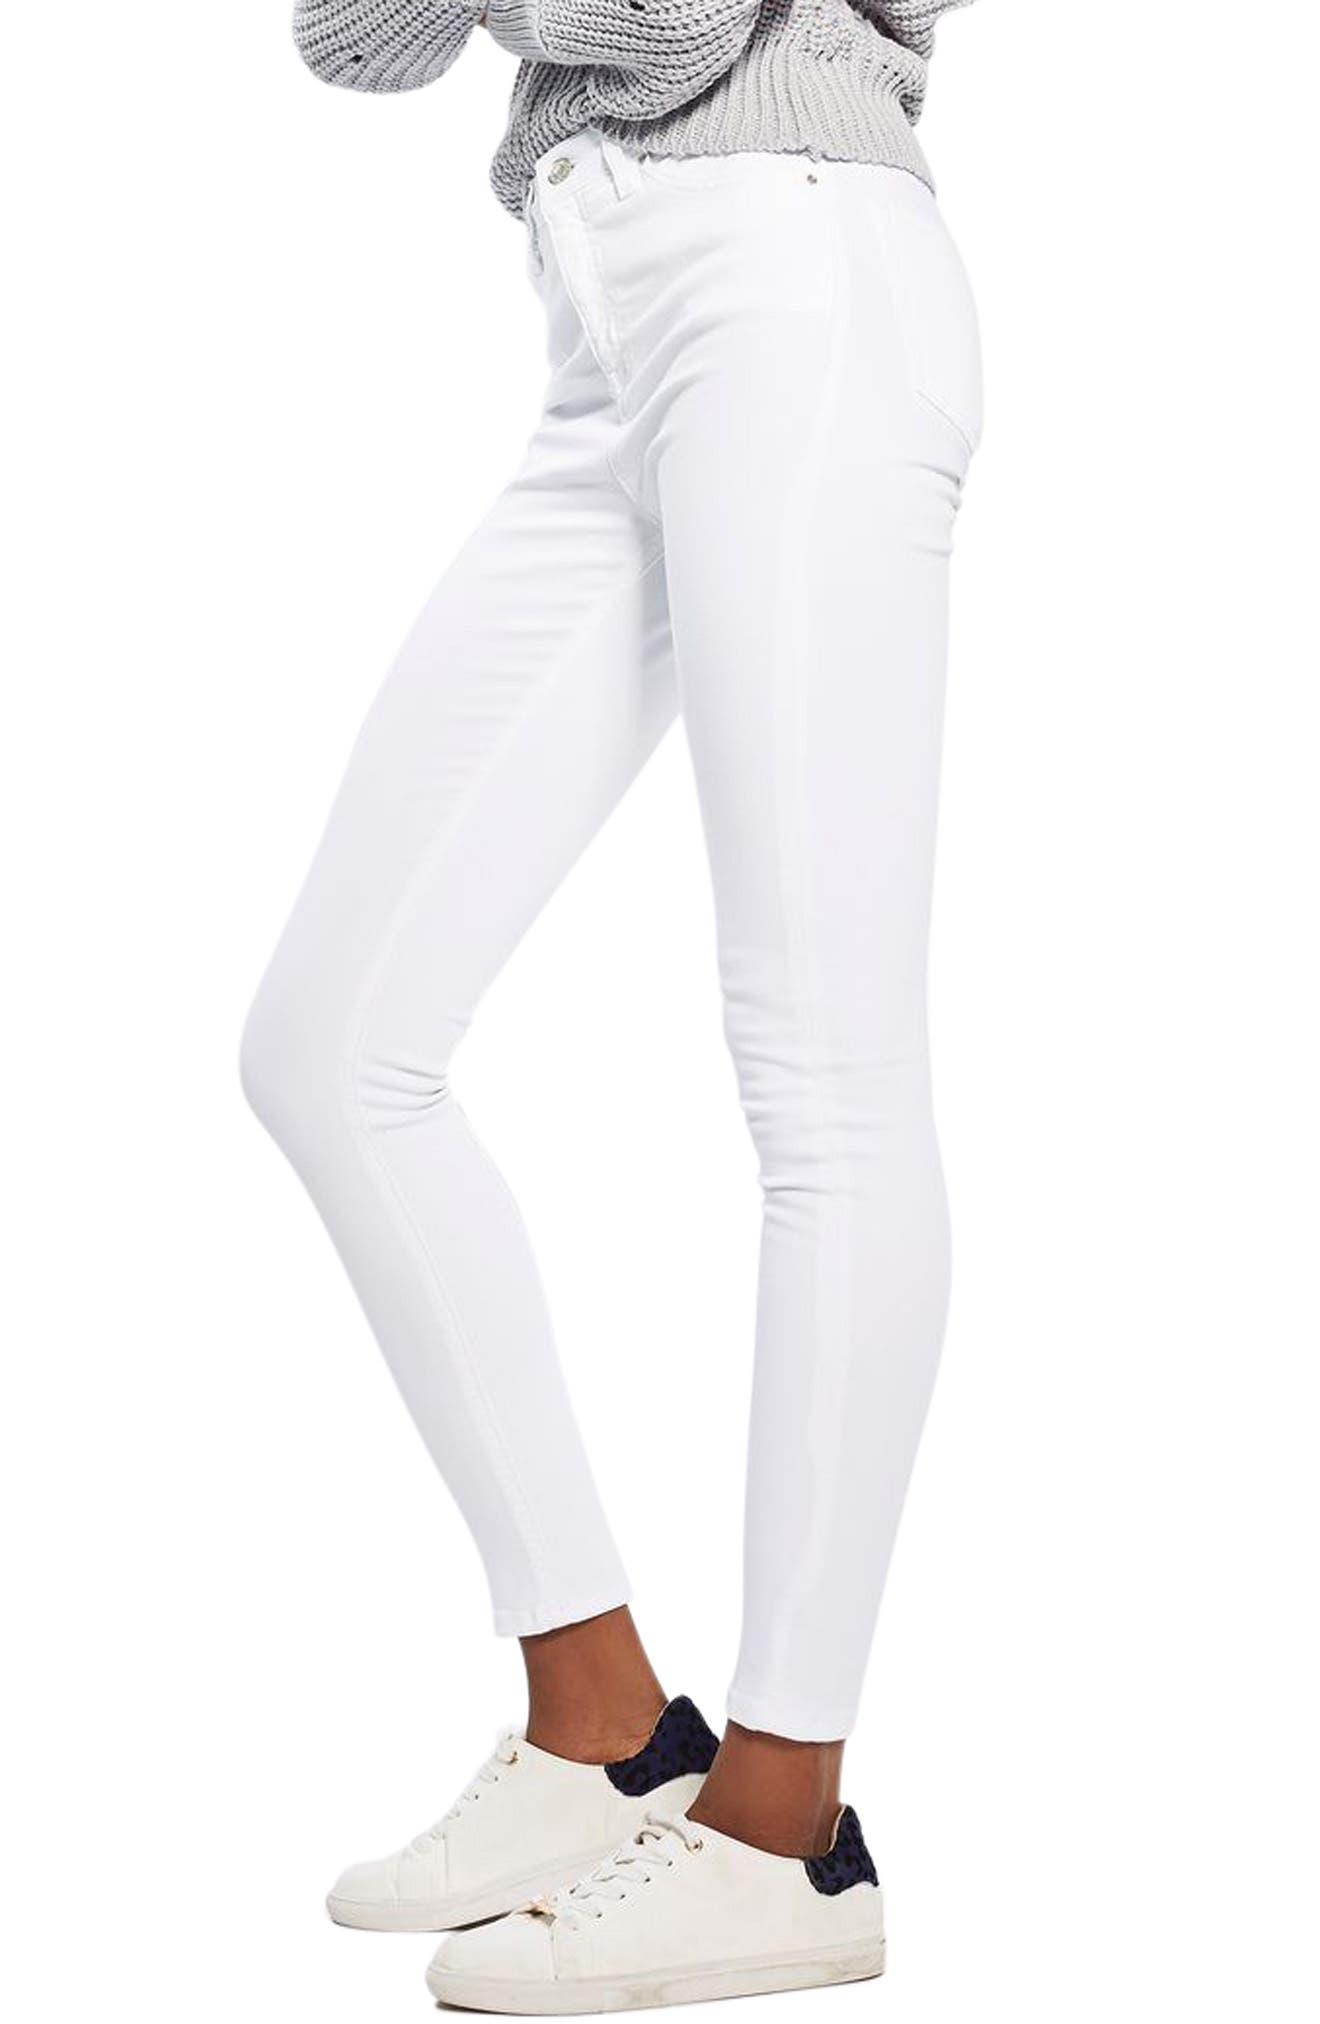 Jamie High Waist Ankle Skinny Jeans,                             Main thumbnail 1, color,                             WHITE